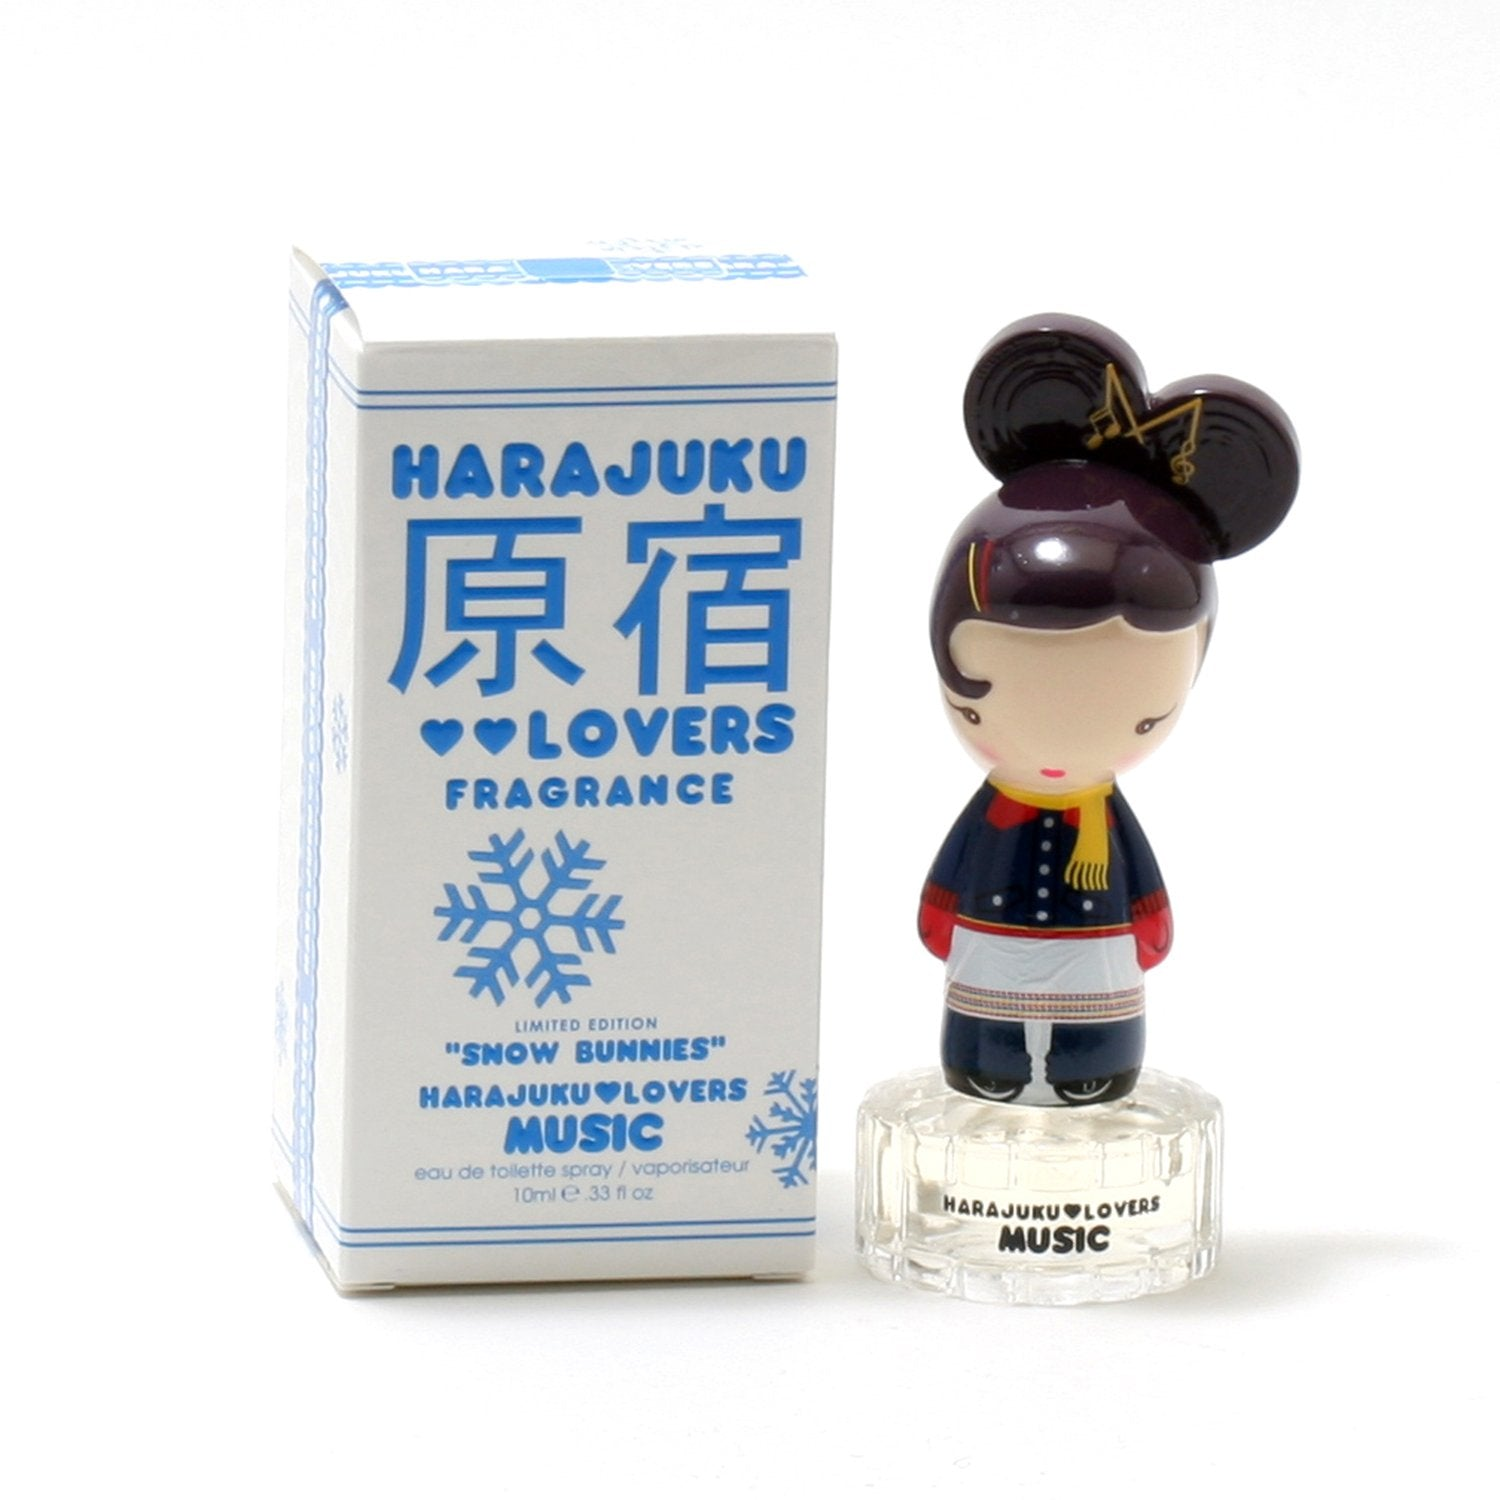 Perfume - HARAJUKU SNOW BUNNIES MUSIC FOR WOMEN - EAU DE TOILETTE SPRAY, 0.33 OZ